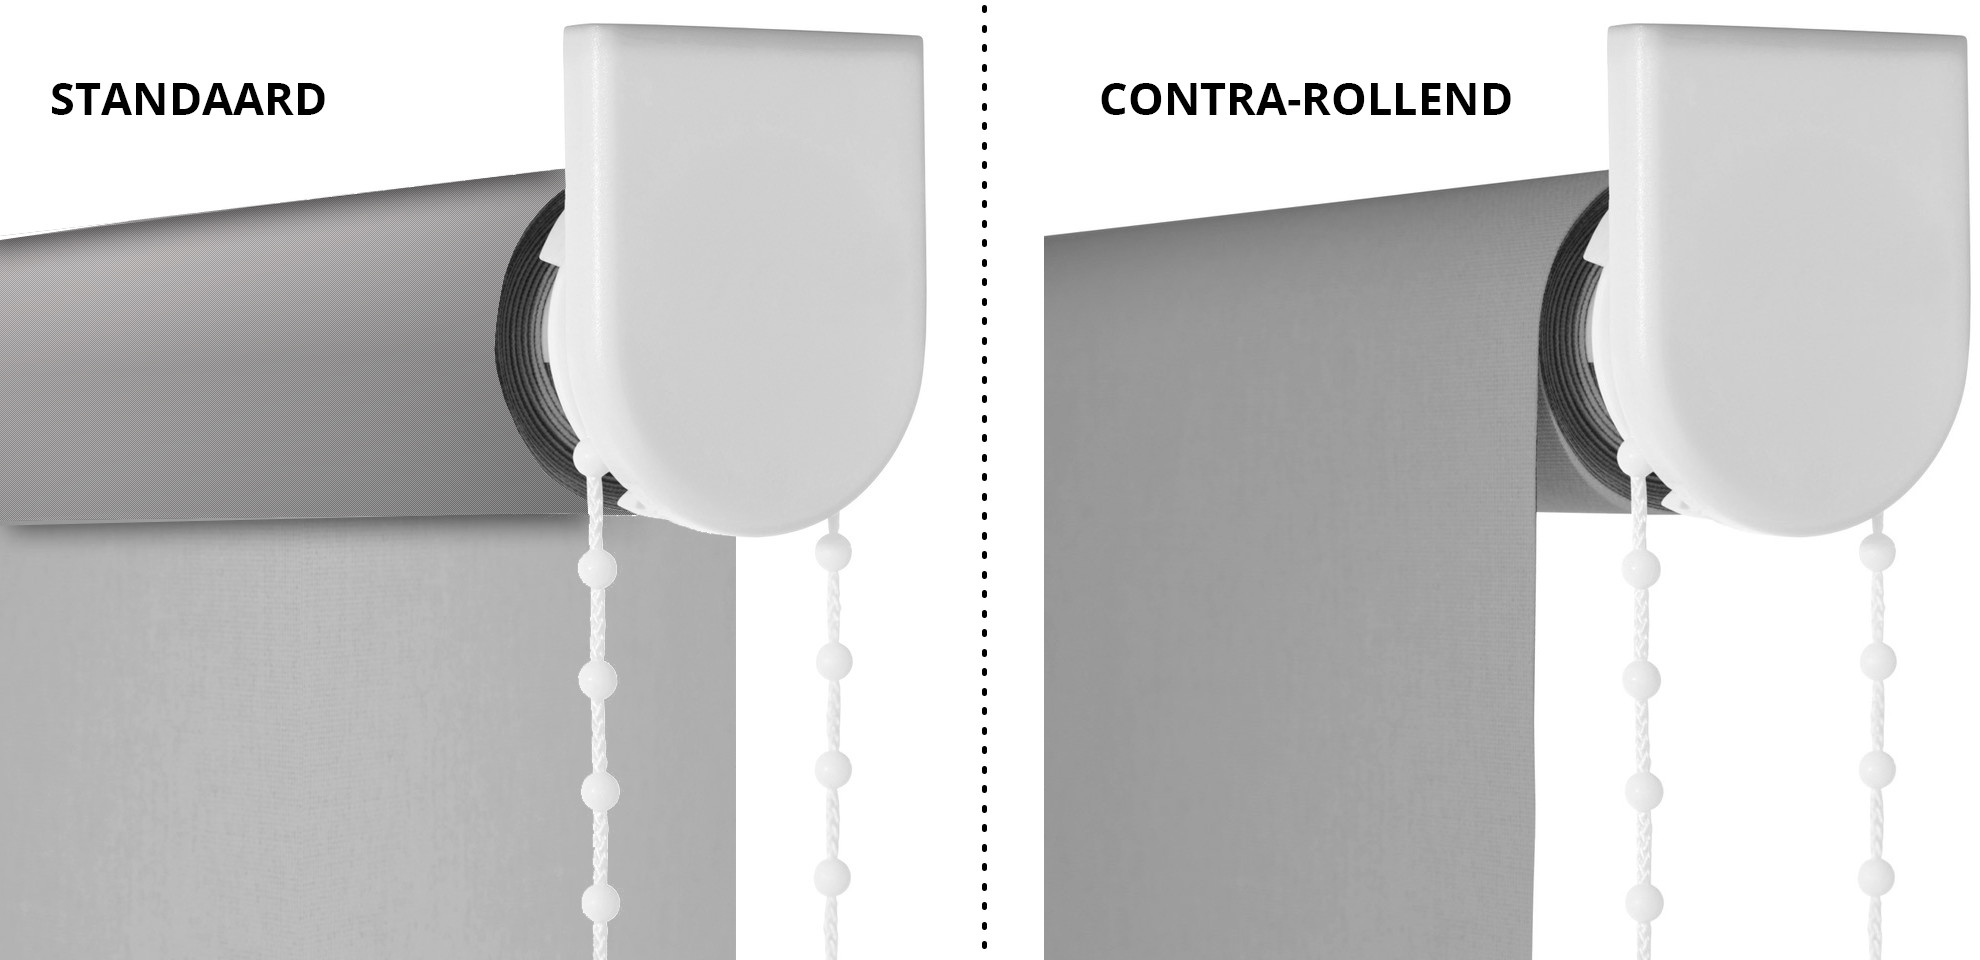 contra-rollend